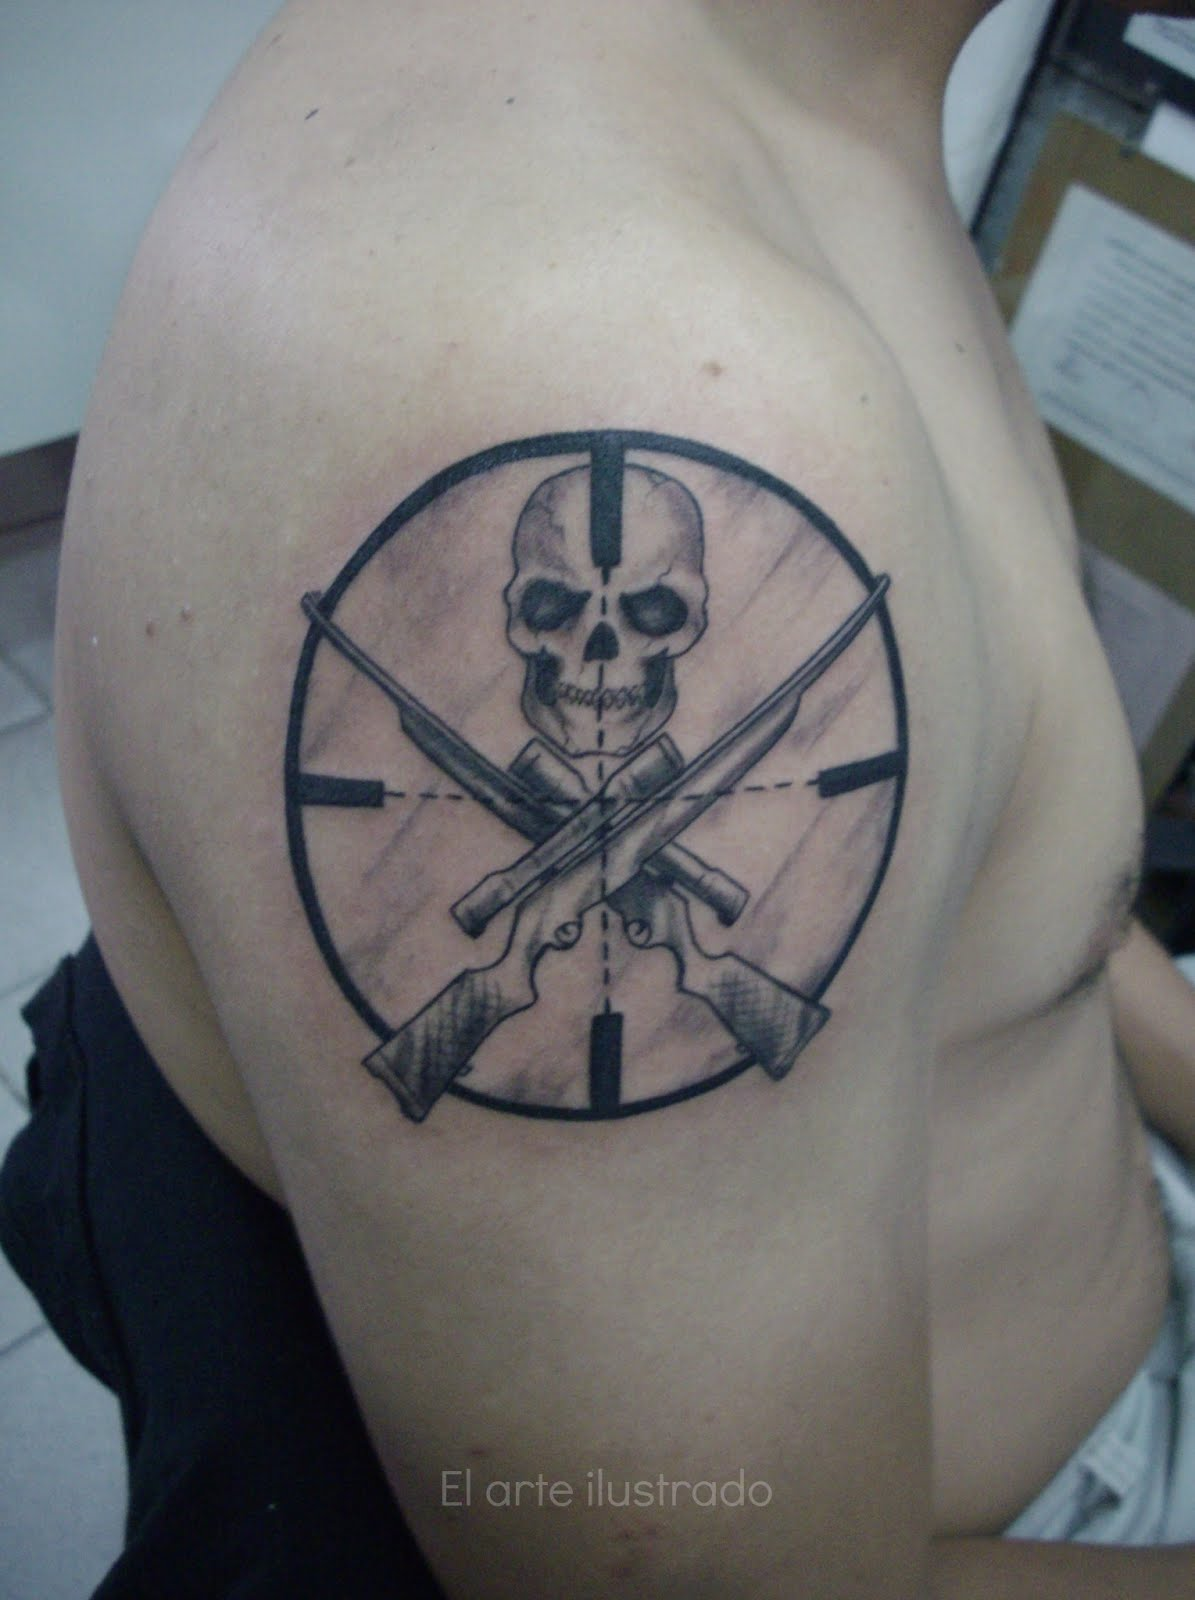 How to tattoo tattoopiercing auto design tech for Bloodborne pathogens for tattoo artists